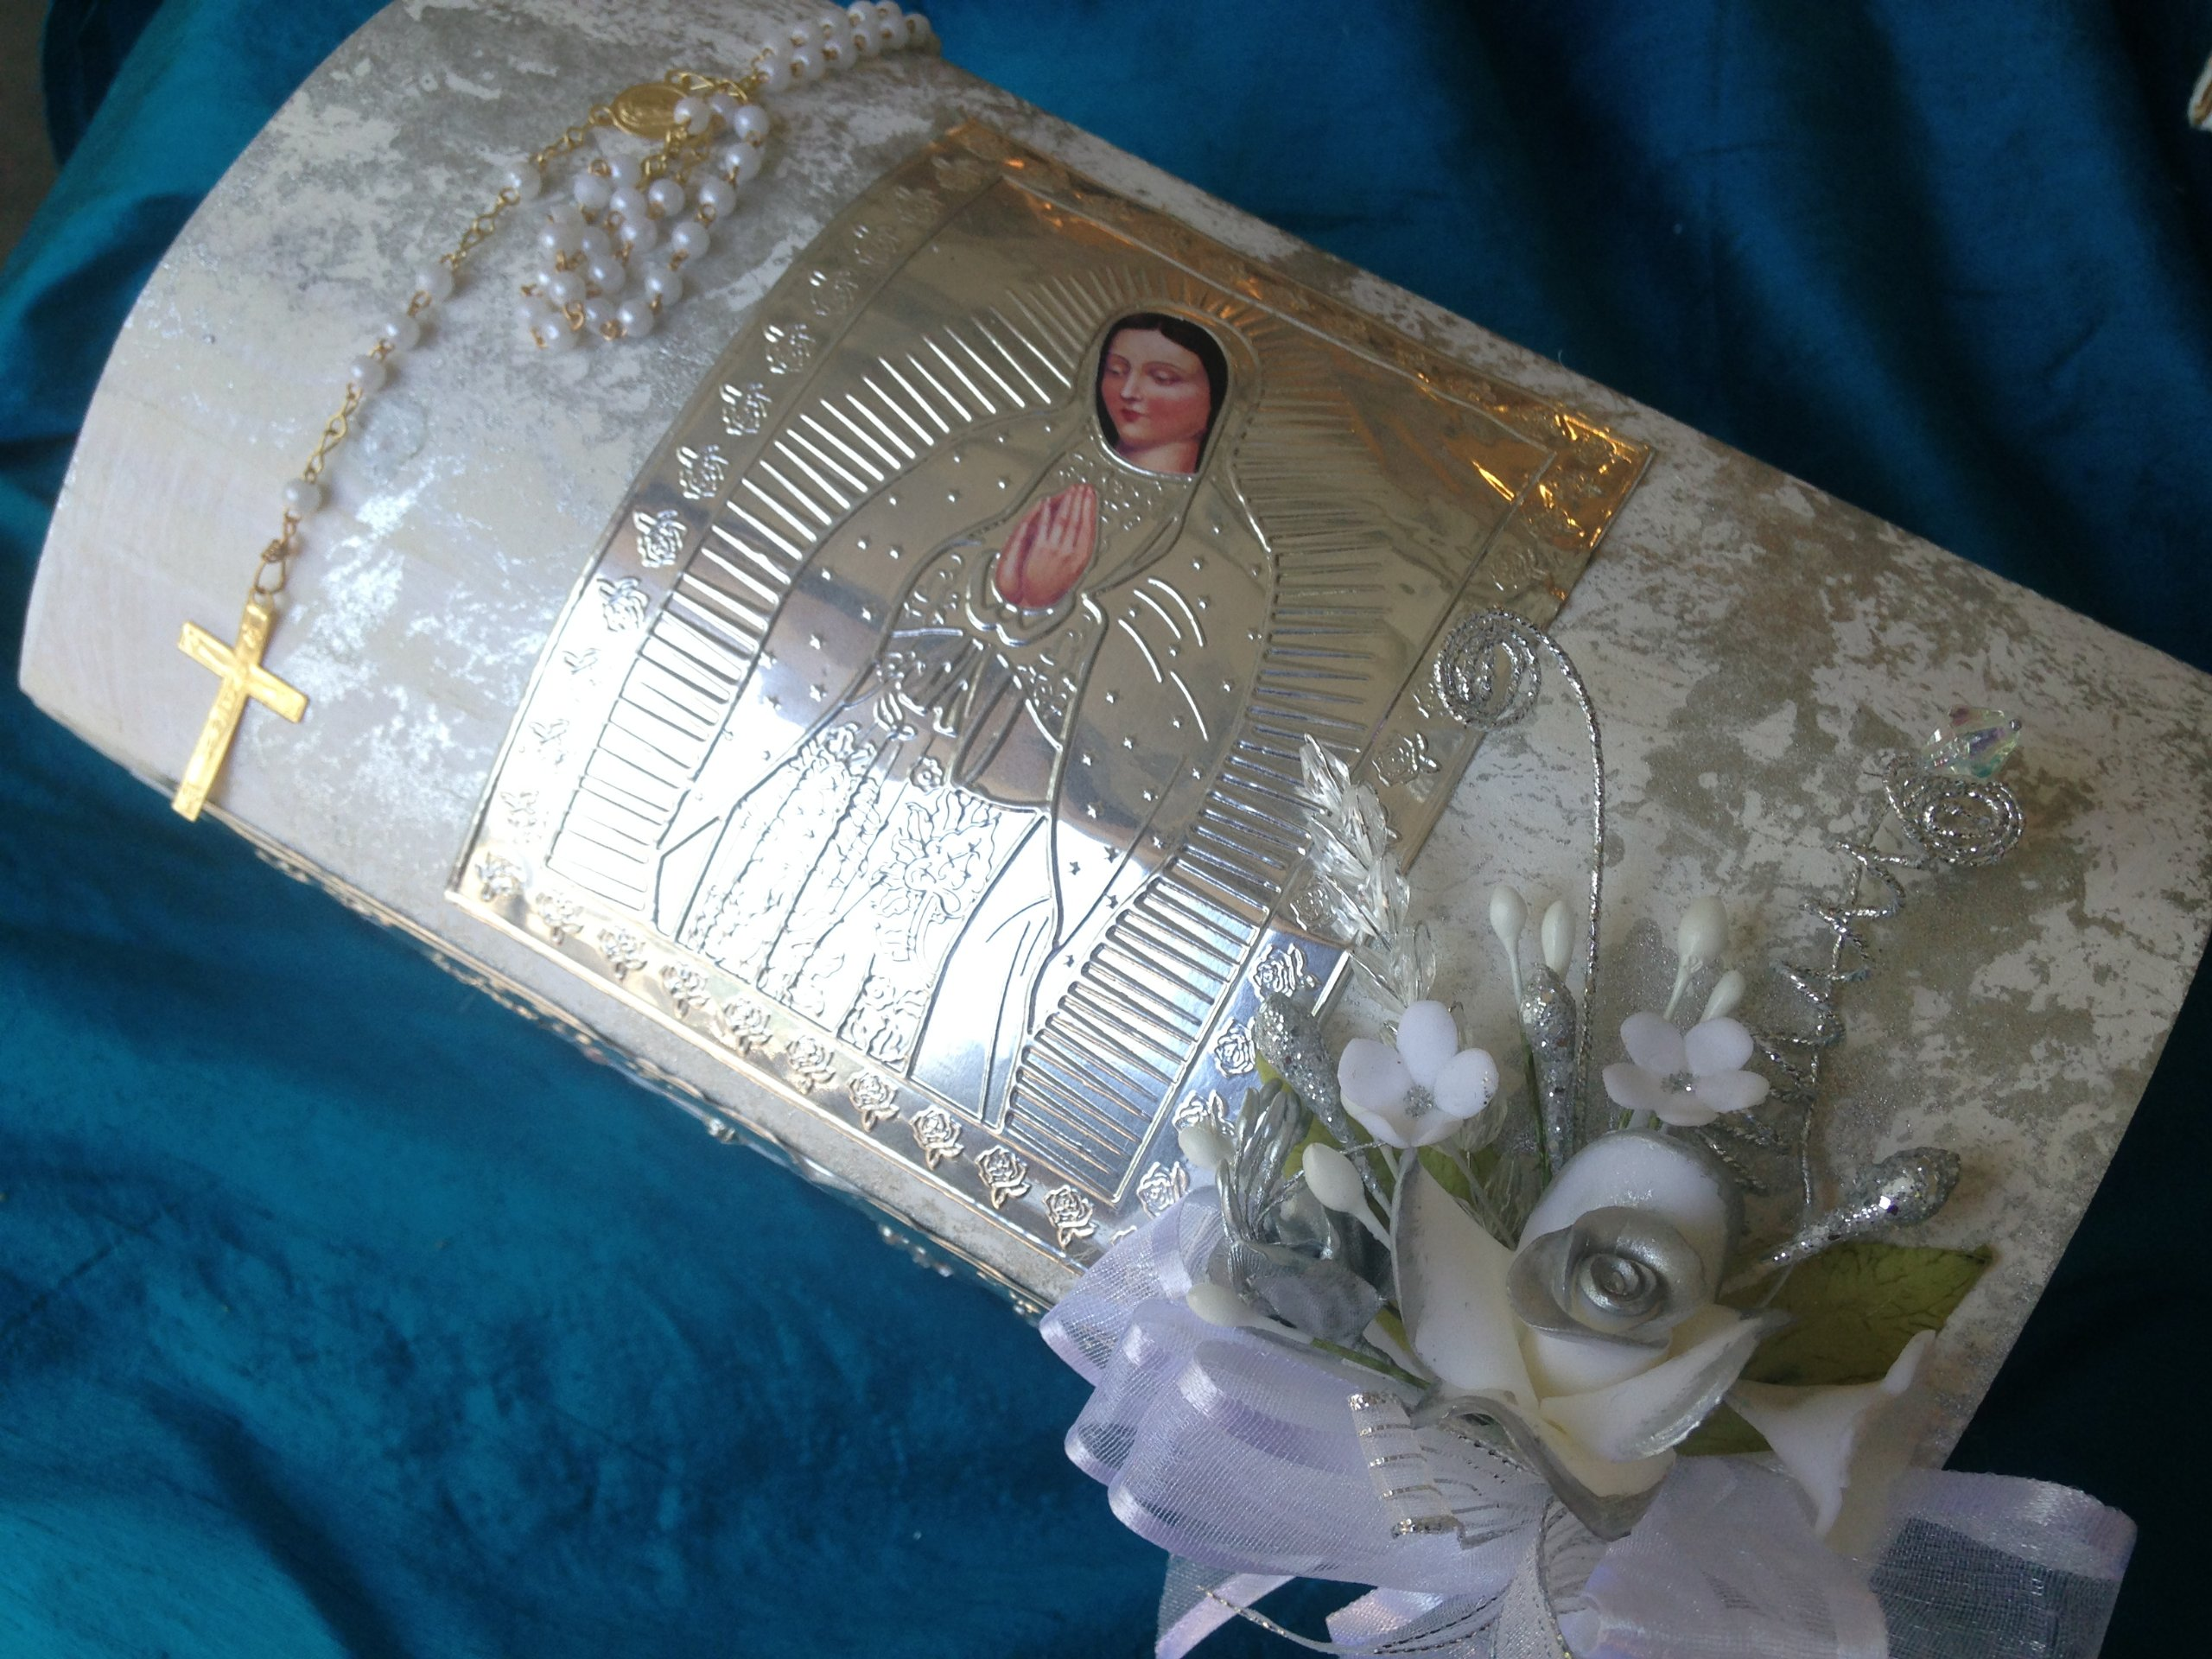 Baptism Candle Set Off White Hand Made Wooden Chest with Virgen De Guadalupe/ Vela Para Bautizo/vela Para Bautismo by hand made (Image #6)